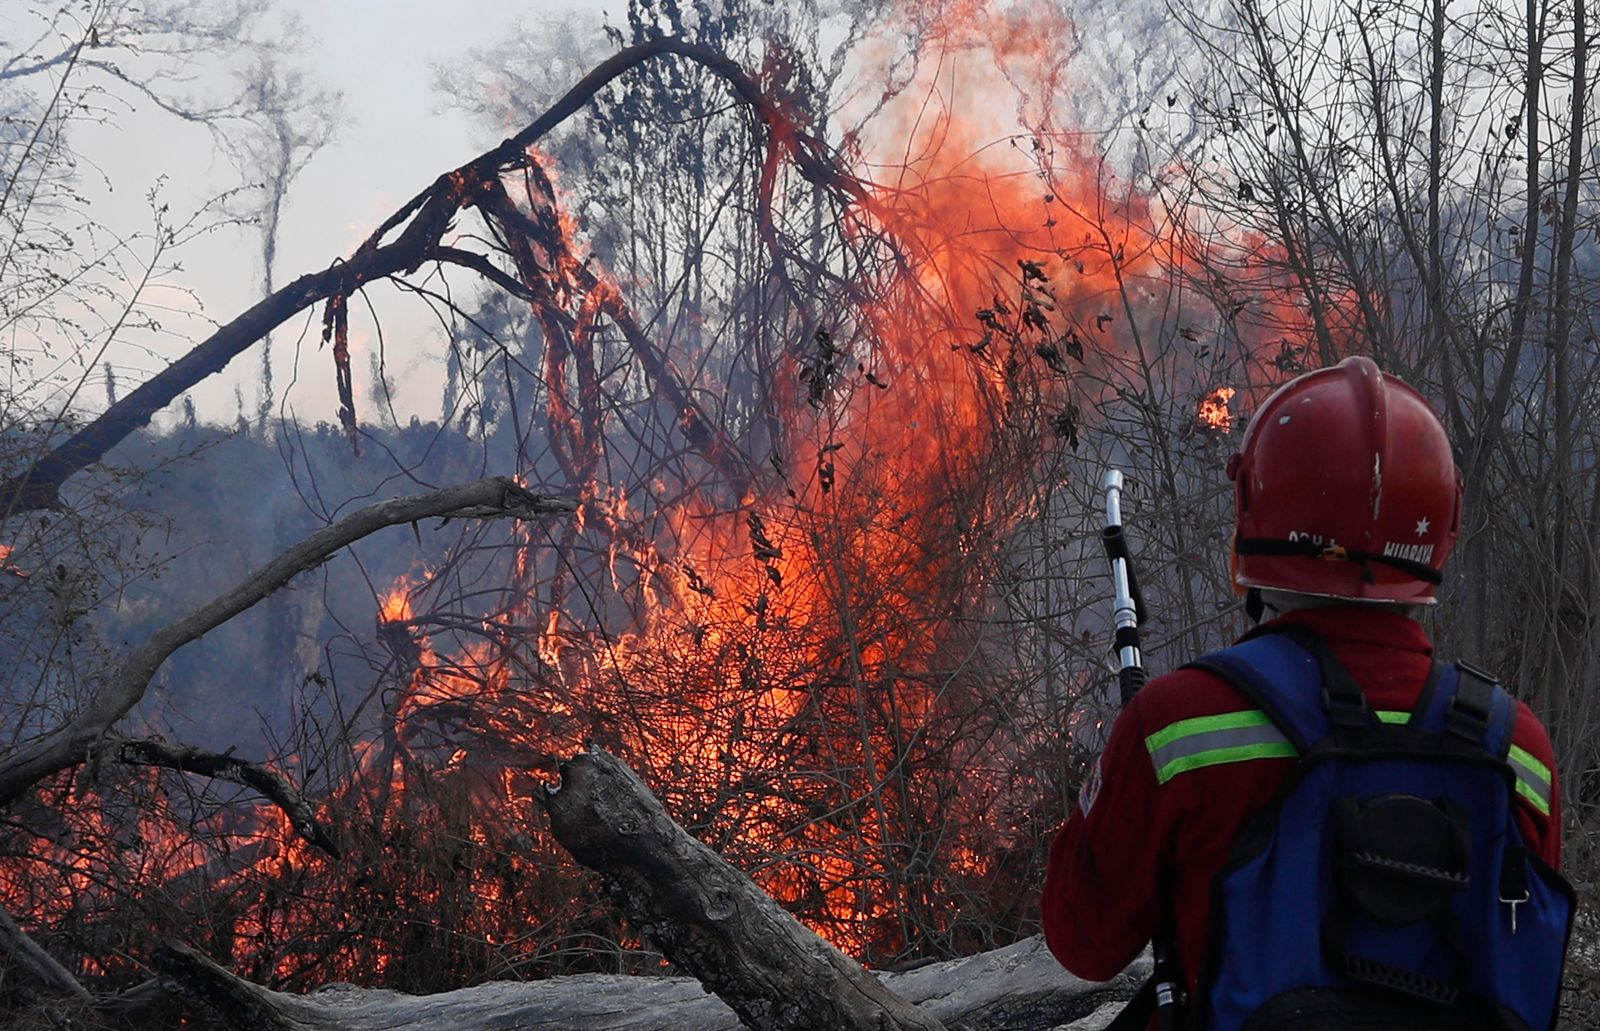 A firefighter works to put out a fire in the Chiquitania Forest in Santa Rosa de Tucabaca, on the outskirts of Robore, Bolivia, Wednesday, Aug. 28, 2019. (AP Photo/Juan Karita)